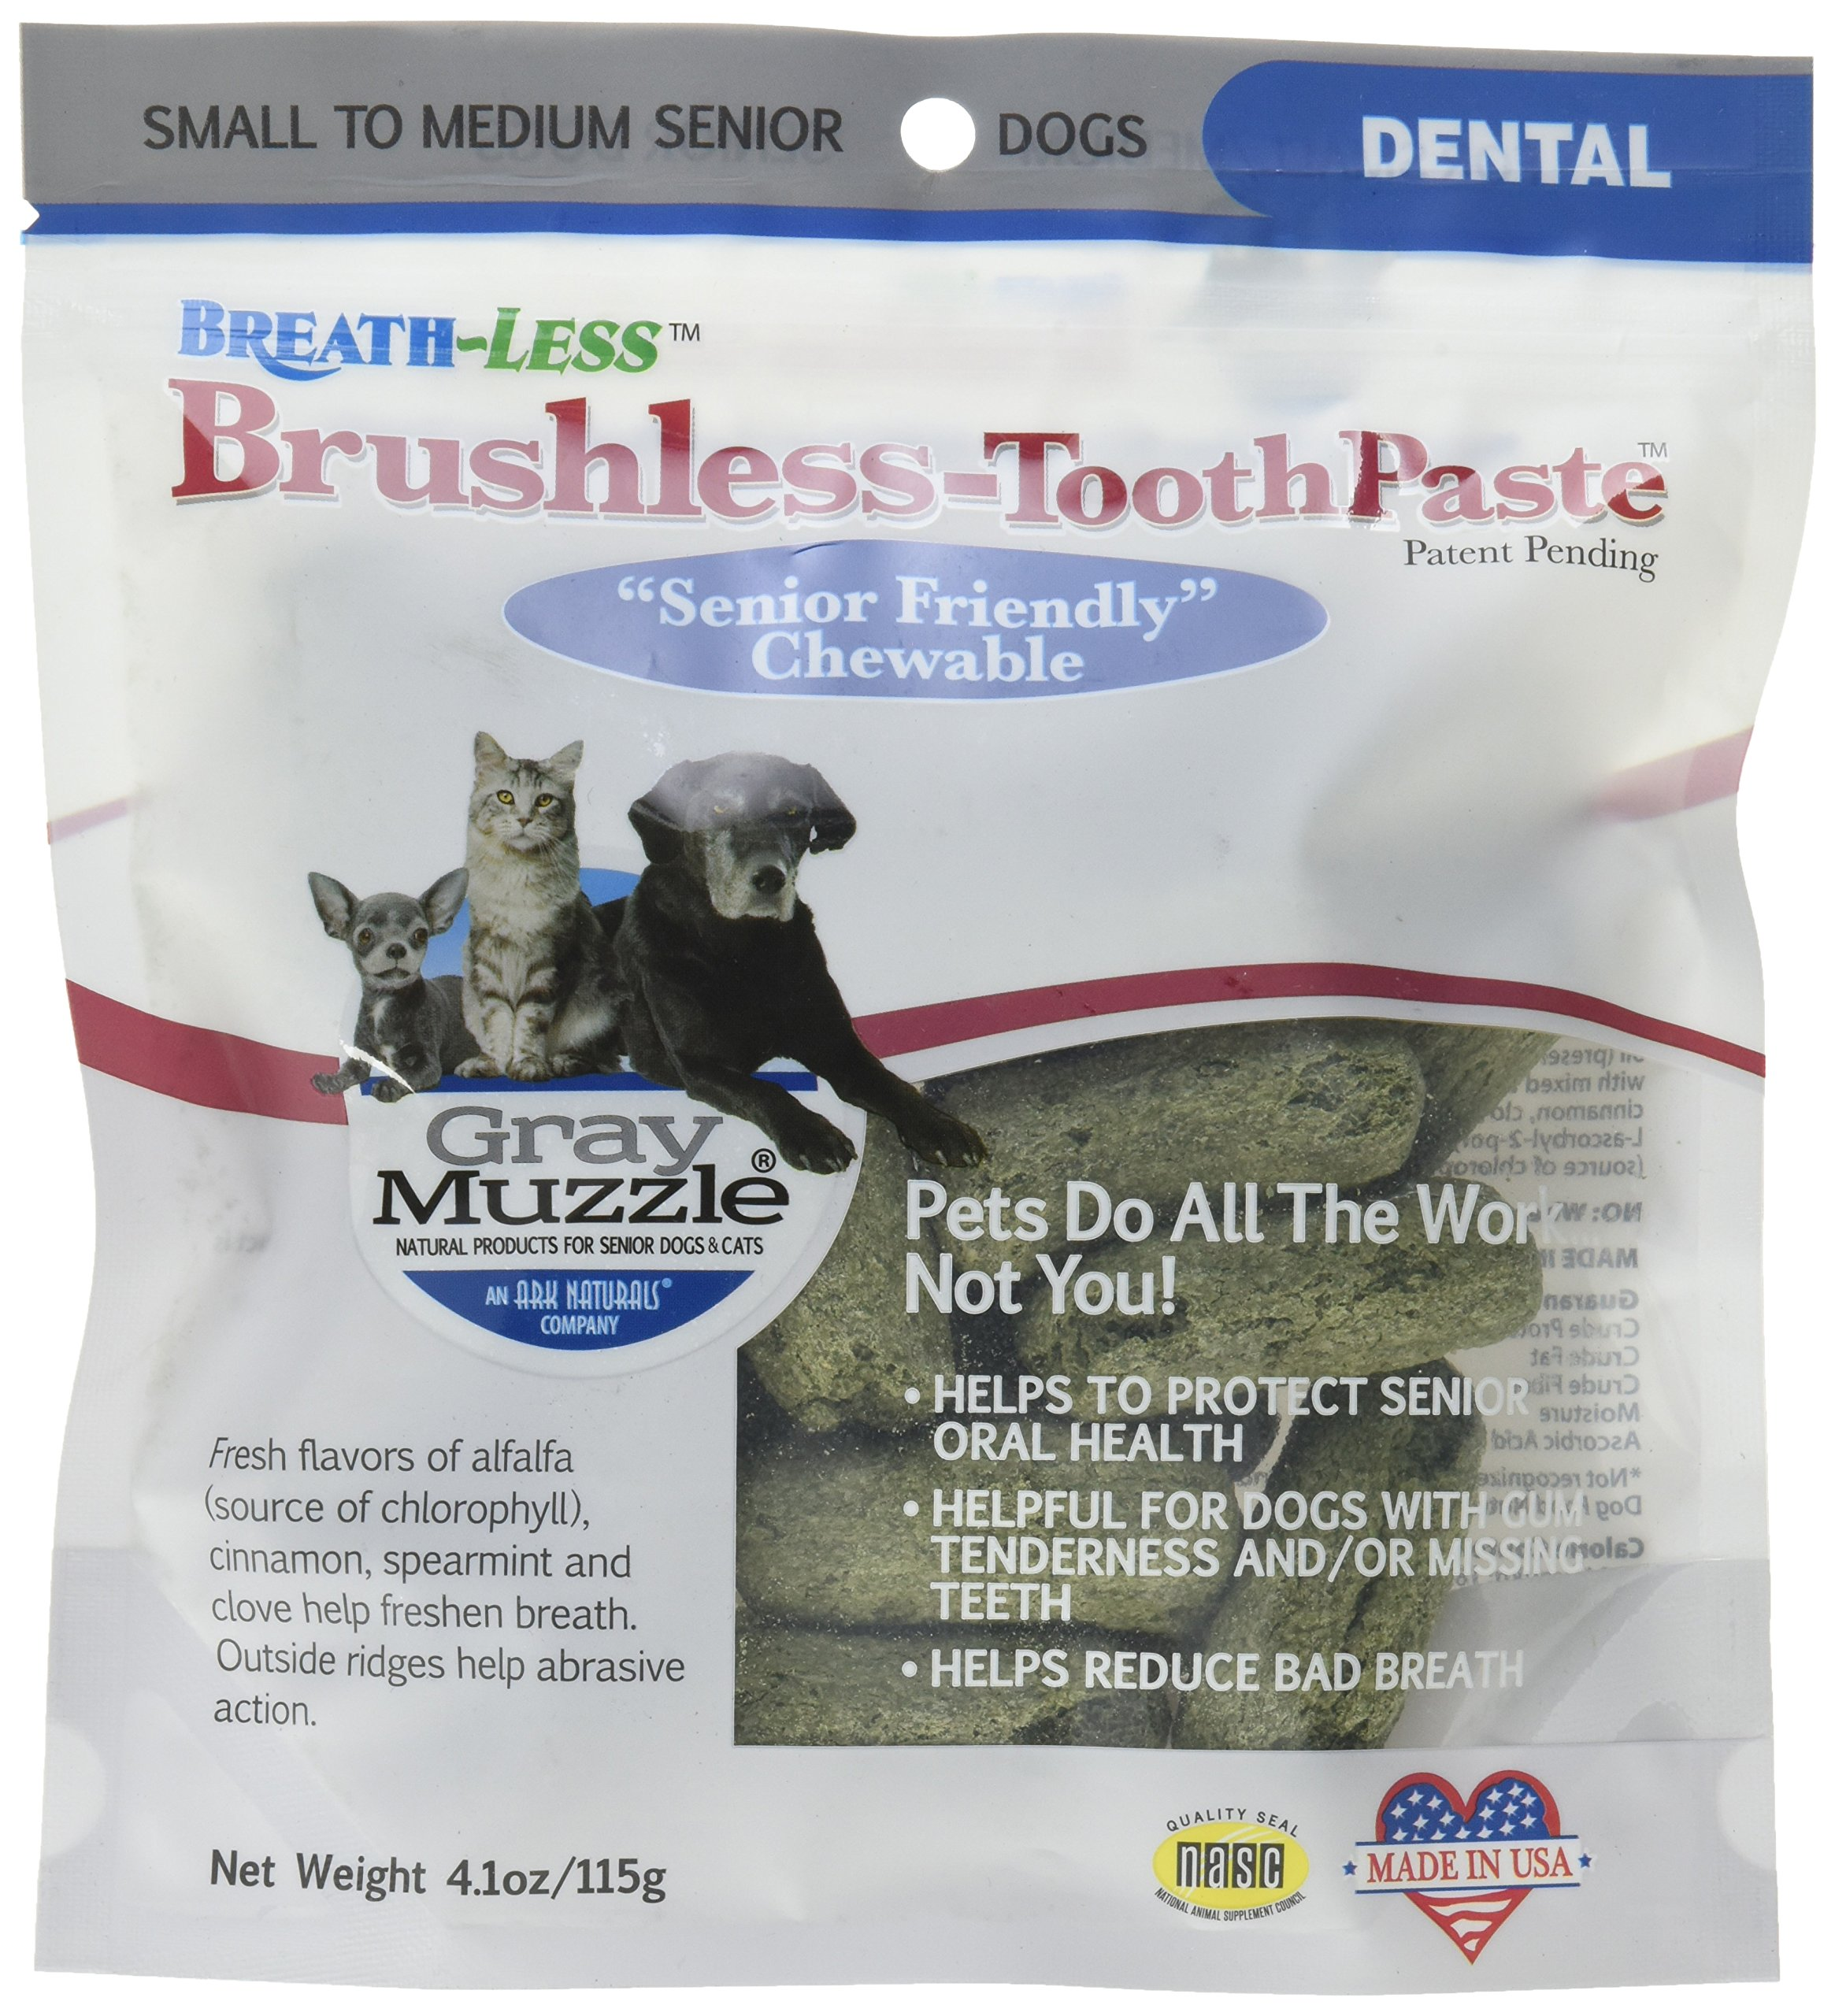 Ark Naturals Ark-4710064-1 Gray Muzzle Brushless Tooth Paste Chewable Dental Treats for Dogs, 4.1 oz